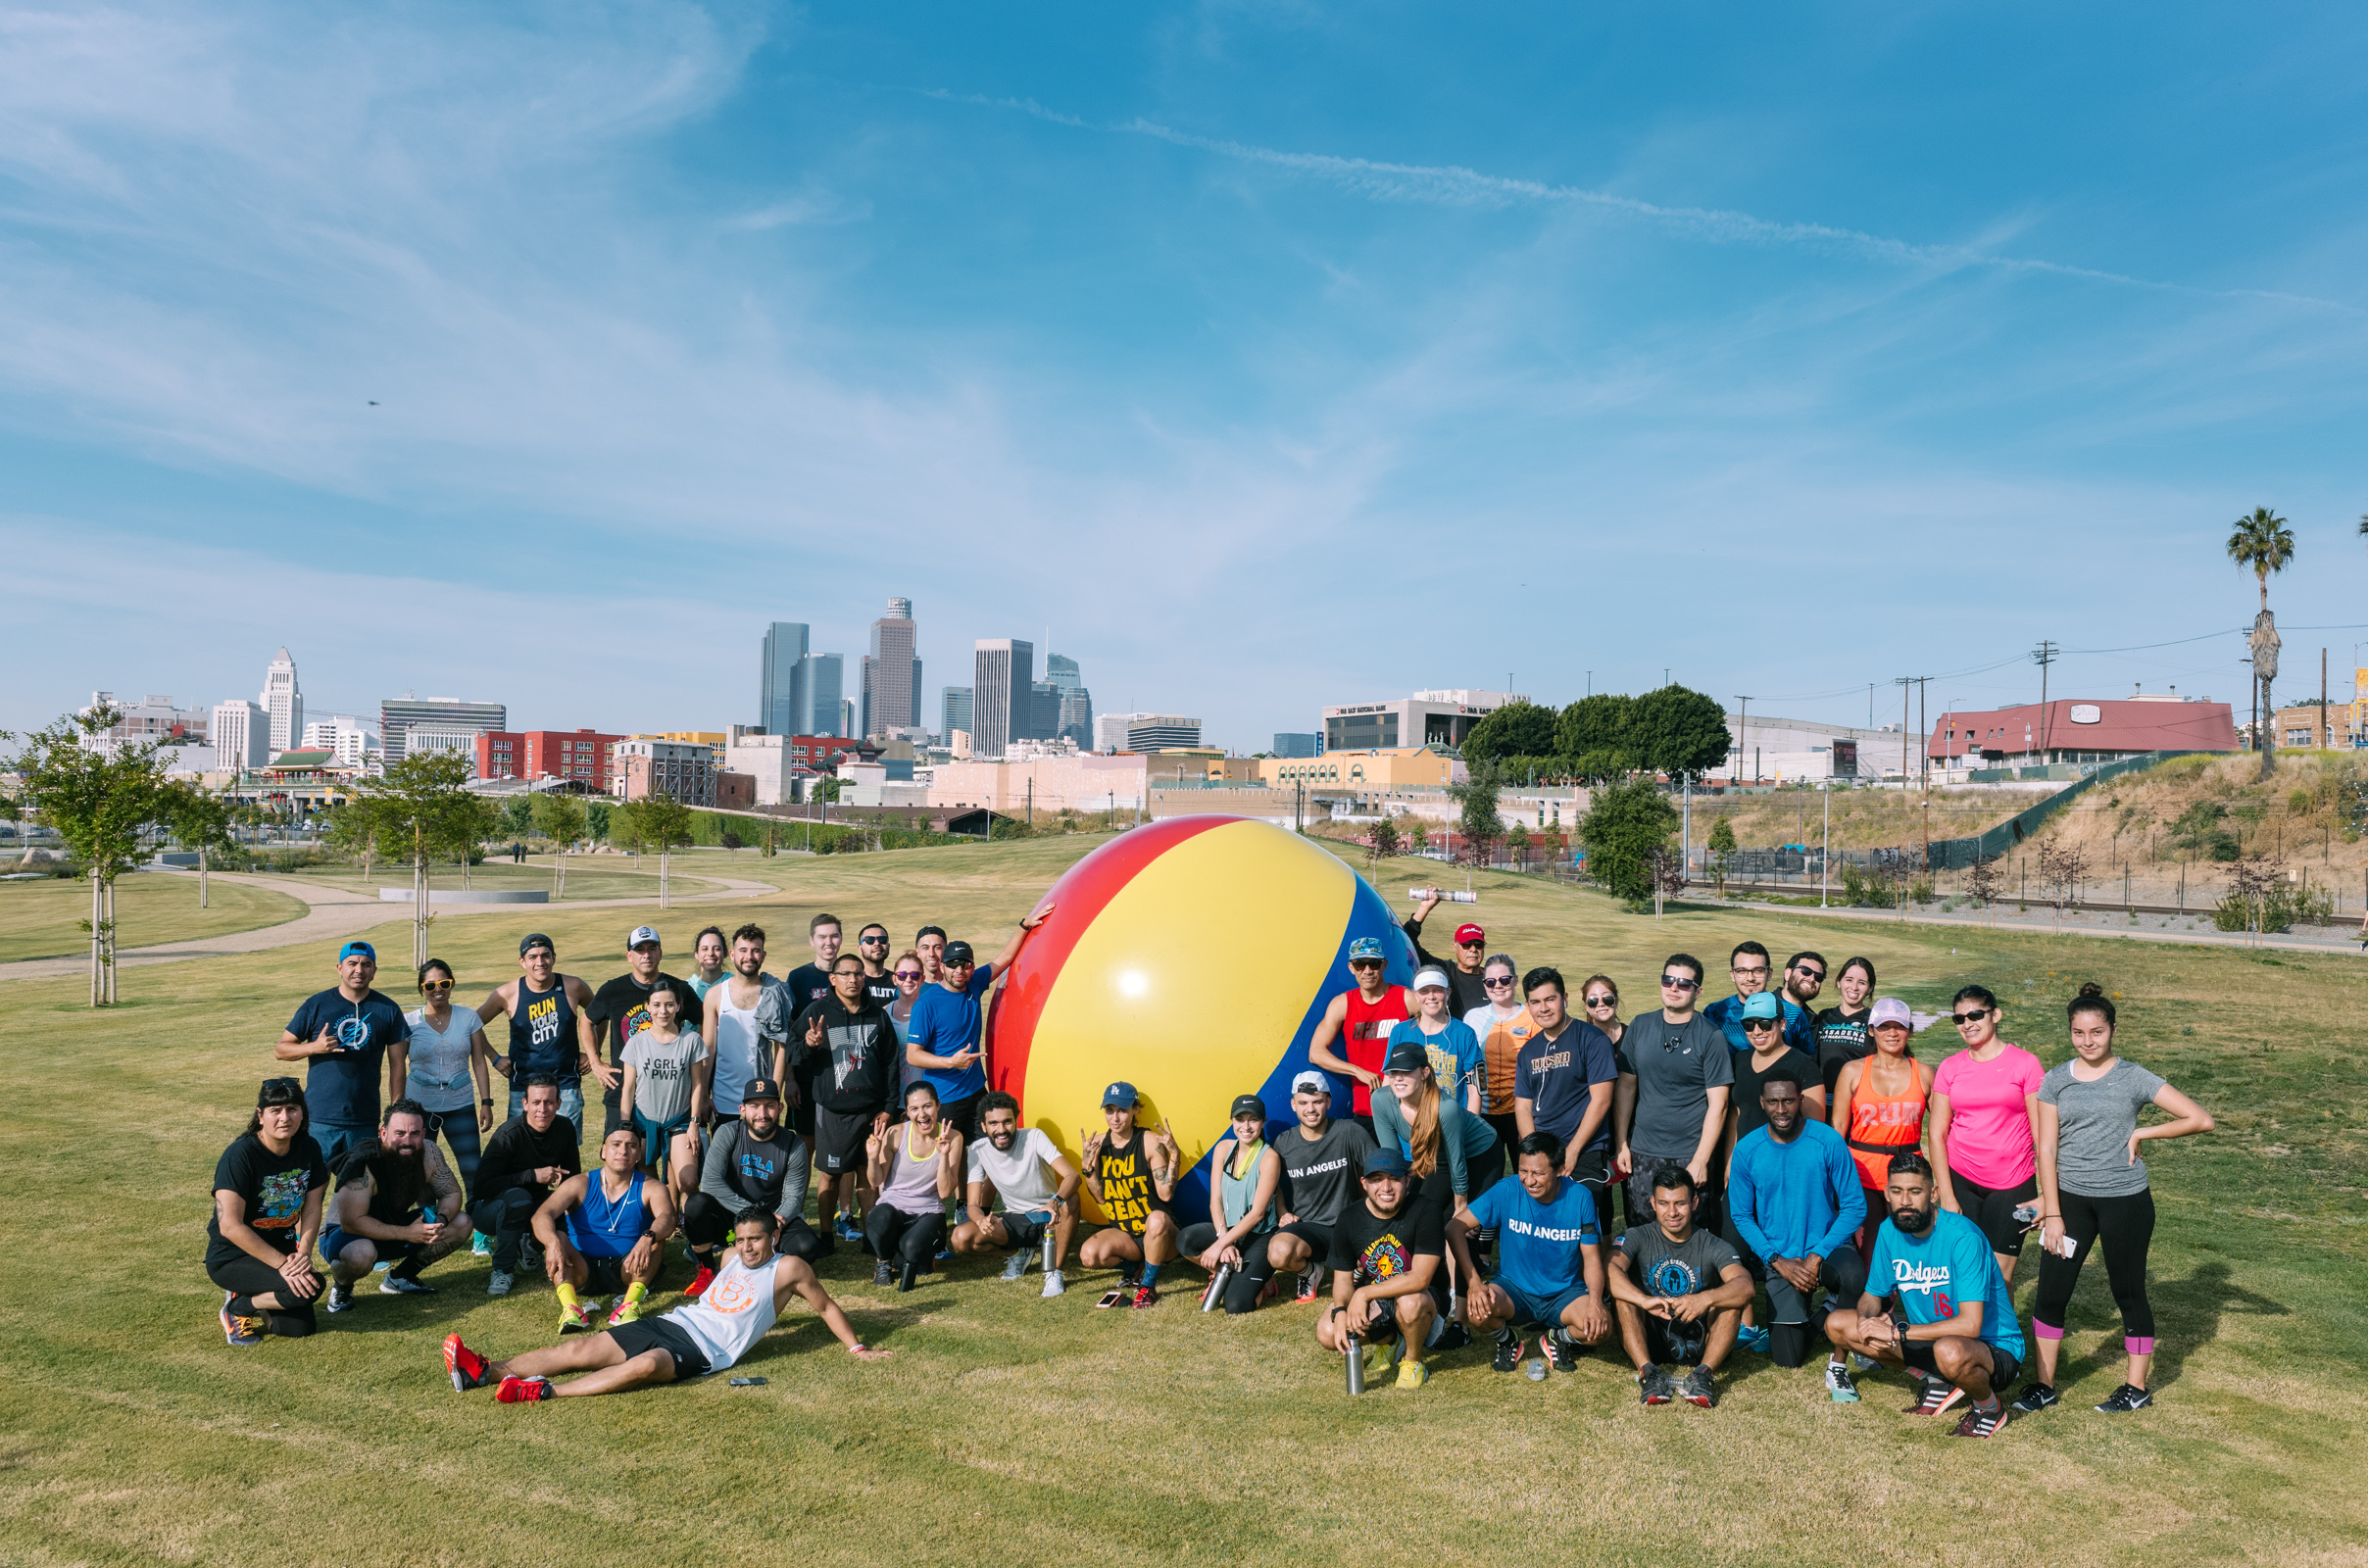 new playground in our backyard los angeles historic park reopens